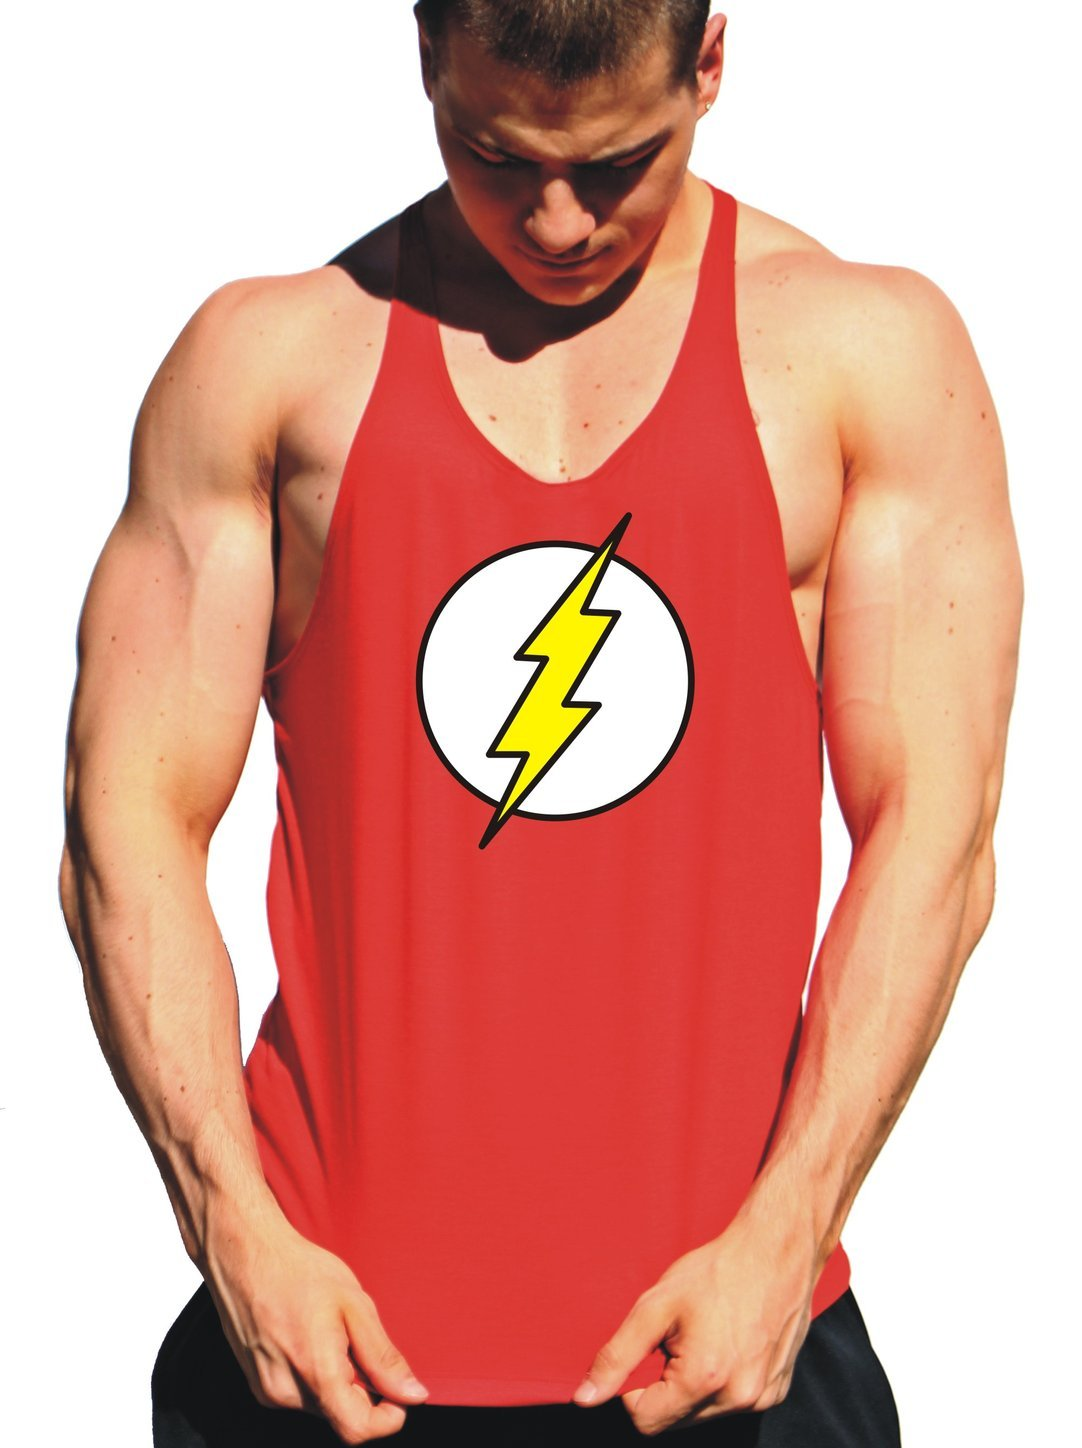 regata cavada masculina de super heroi the flash